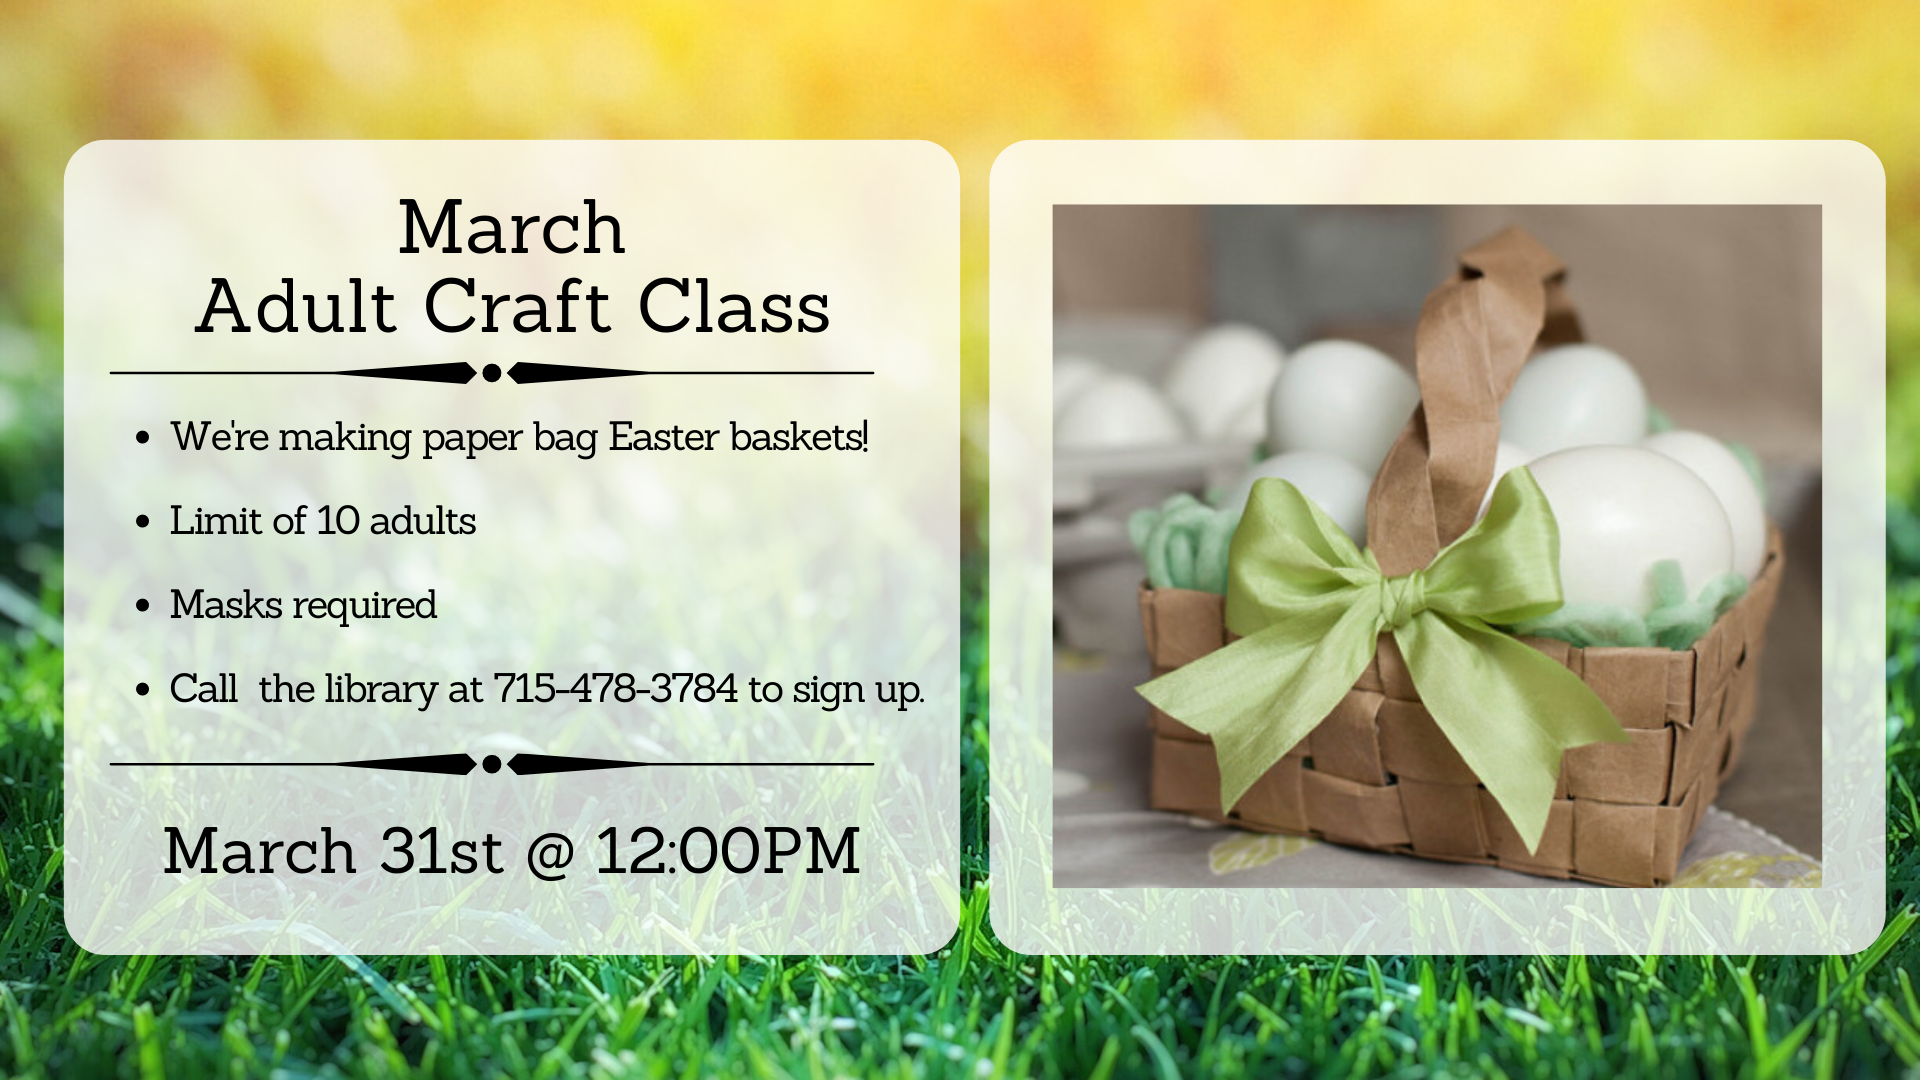 March 31st 2021 Adult Craft Class